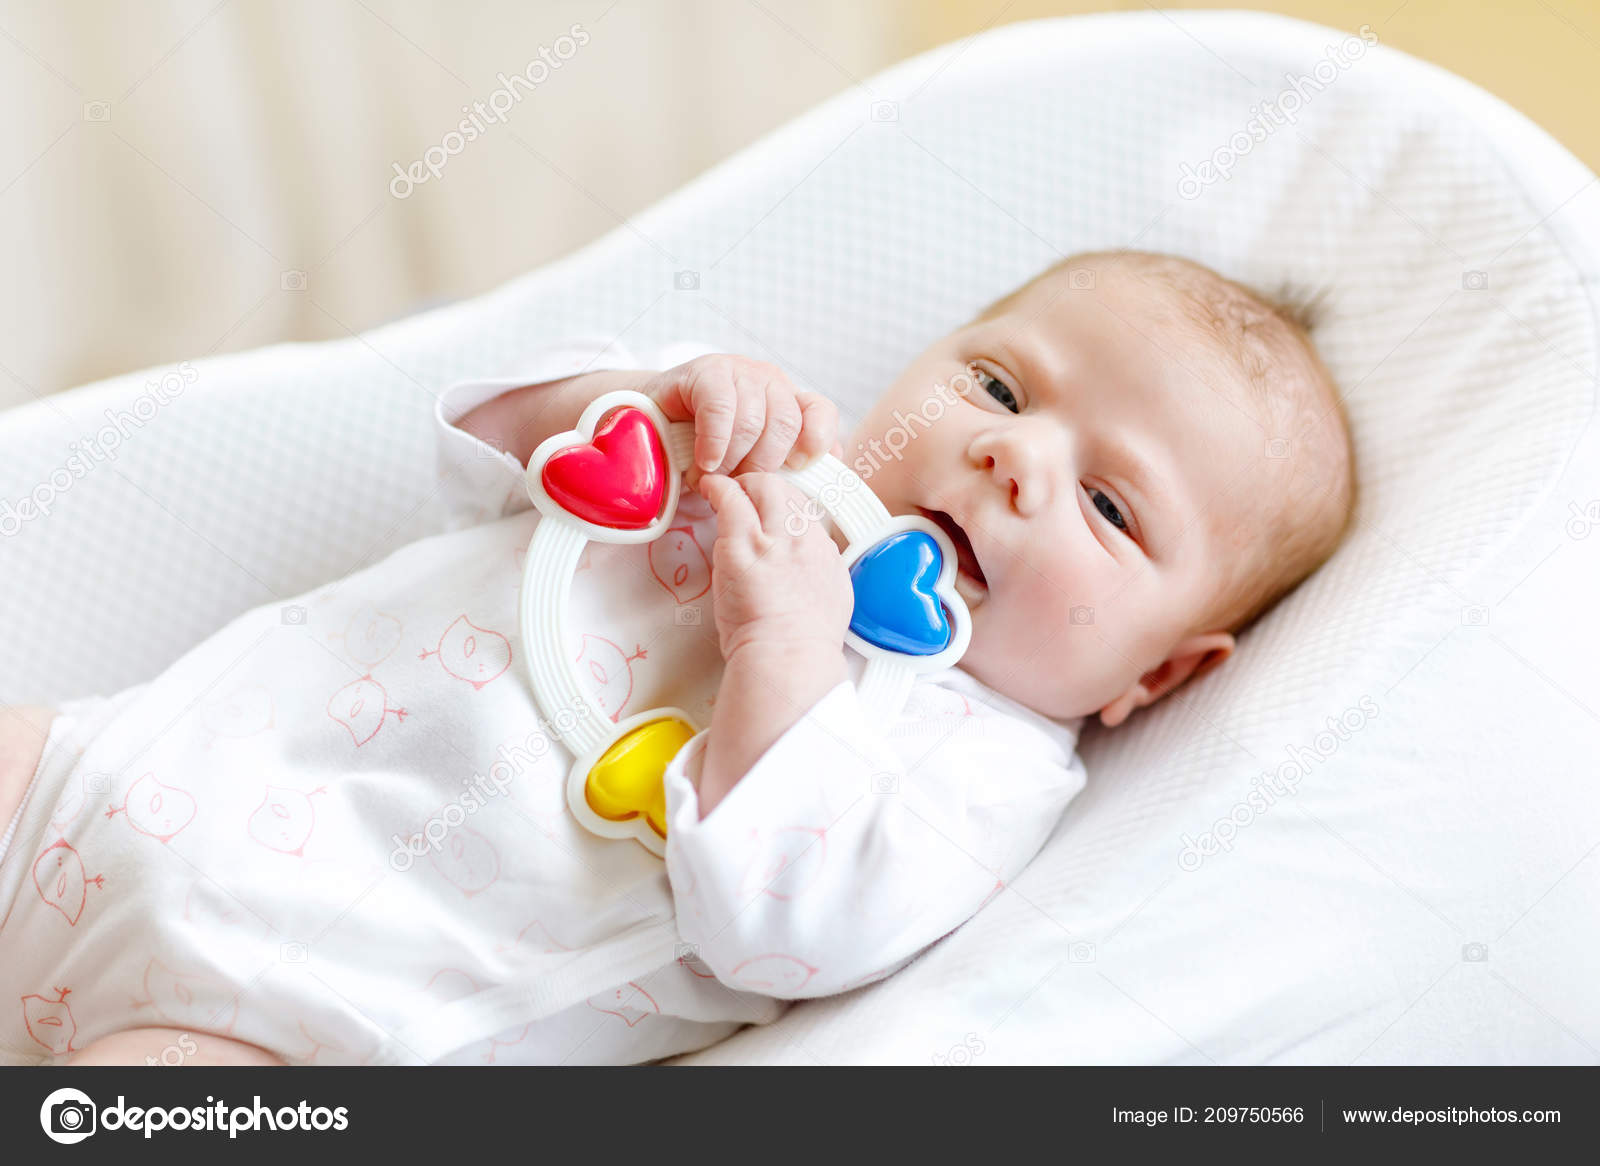 Cute Healthy Newborn Baby Playing With Colorful Rattle Toy In White Bed At Home New Born